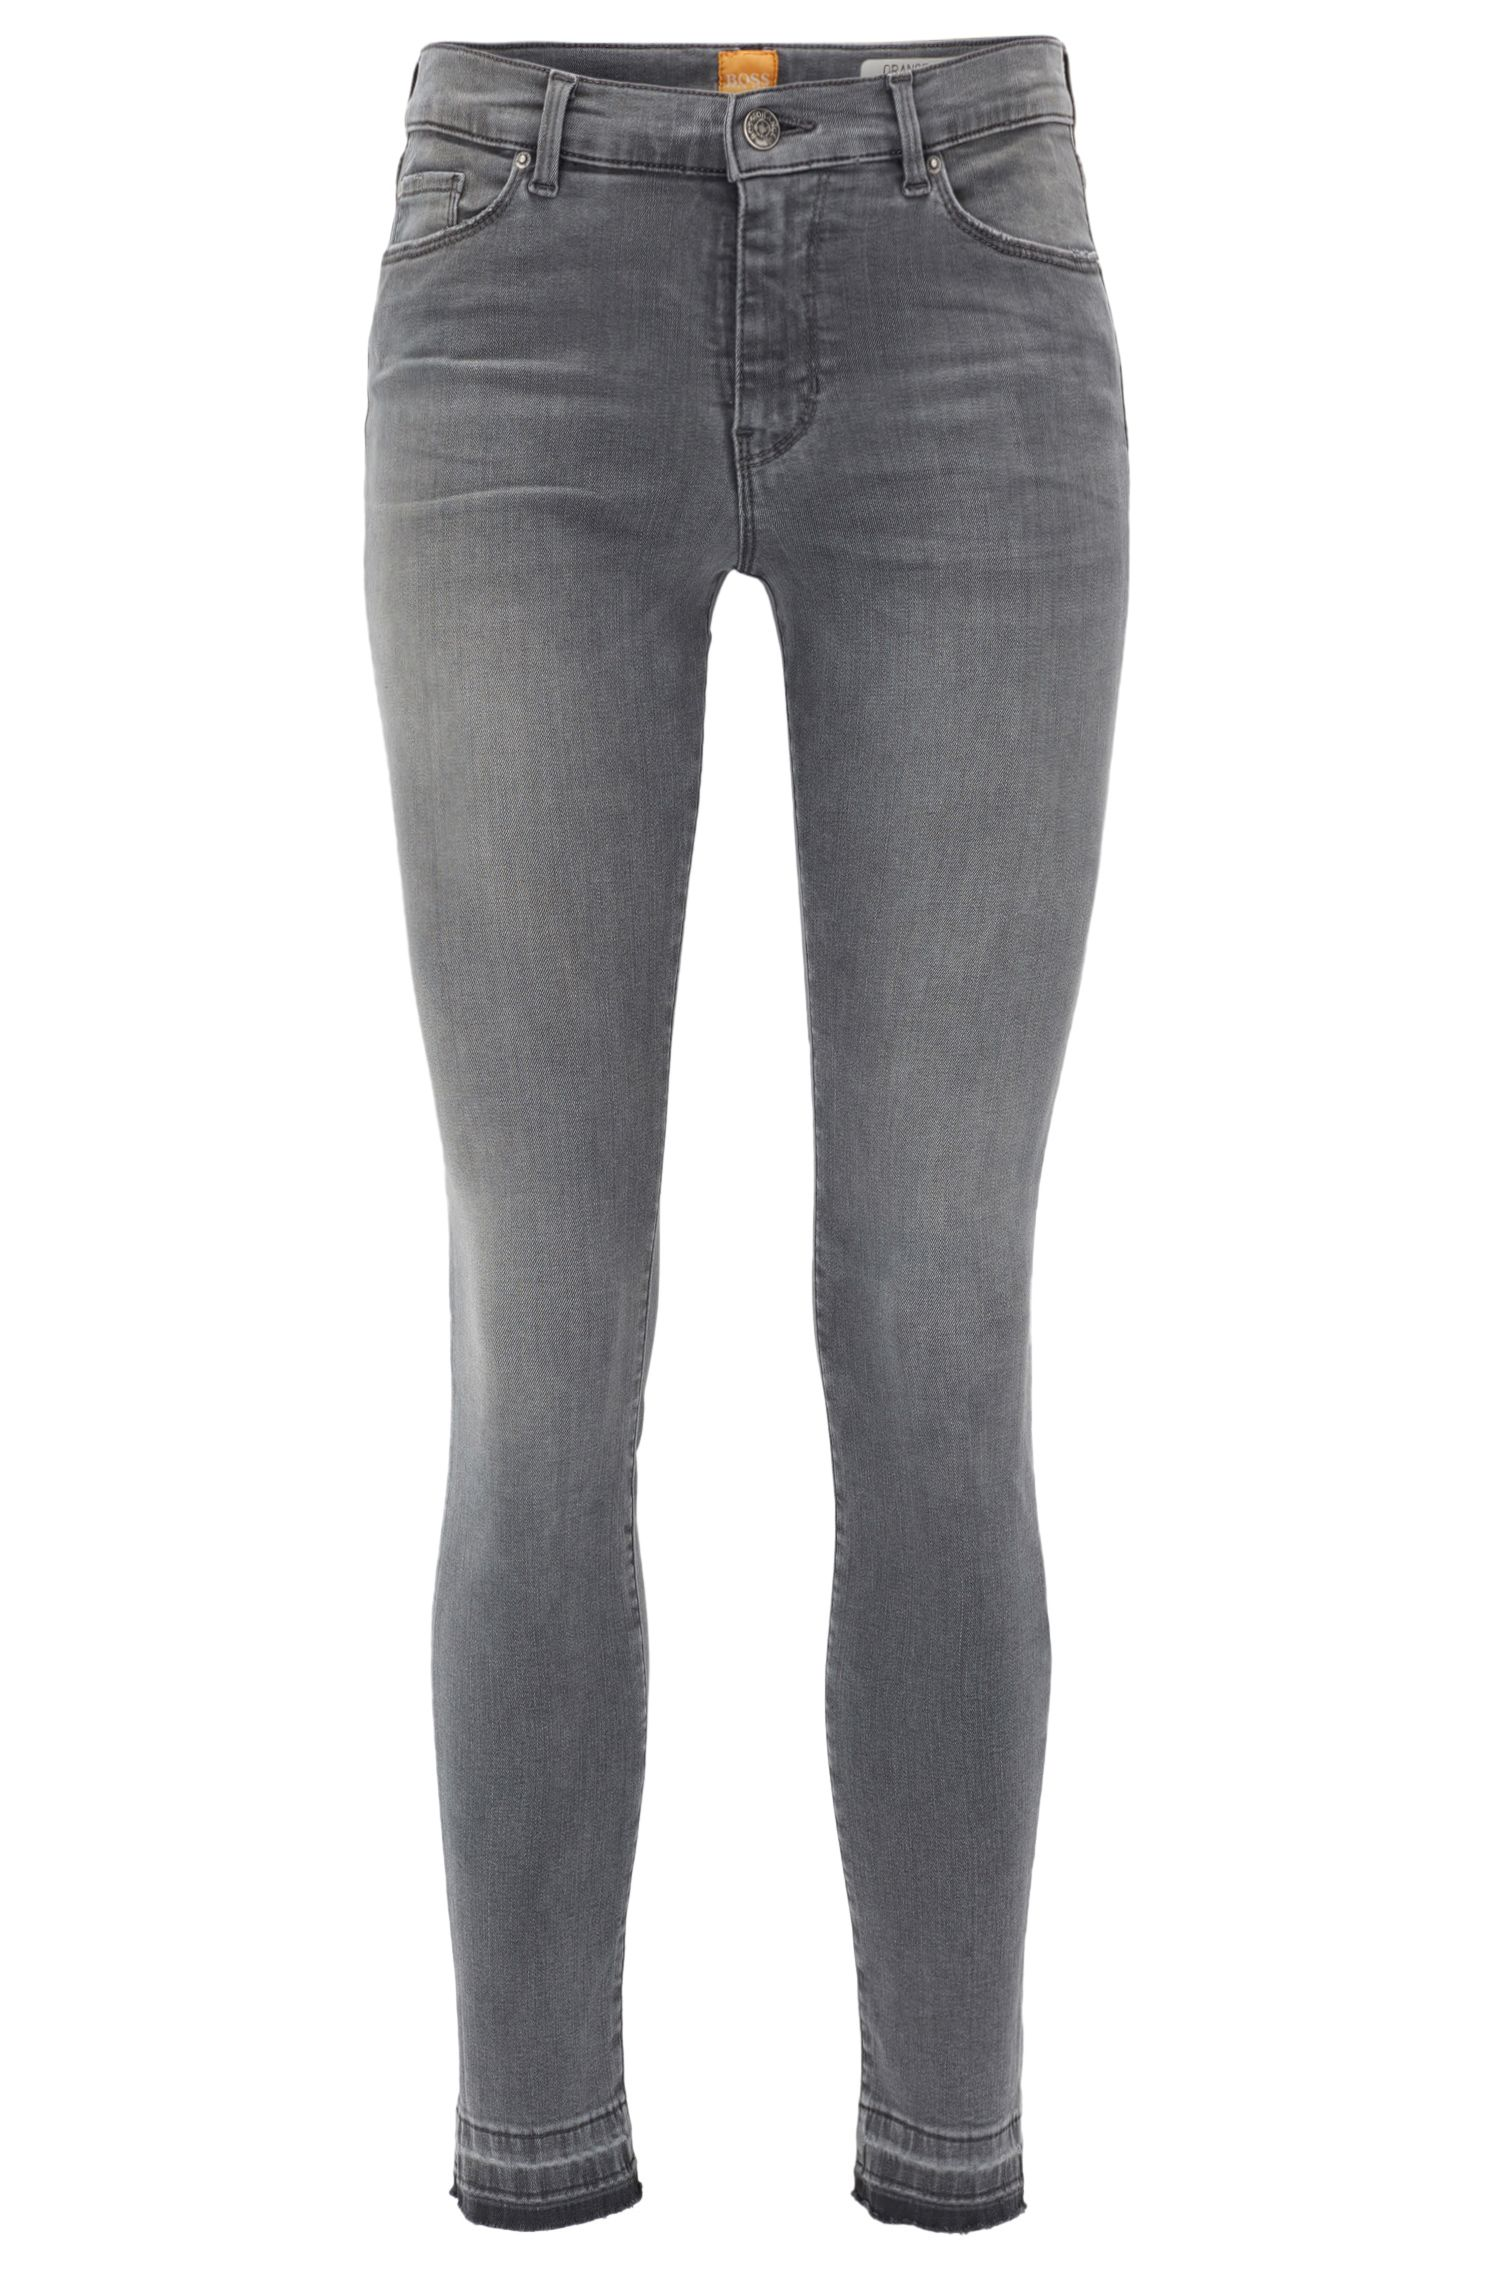 Skinny-Fit Jeans in Cropped-Länge aus Stretch Denim